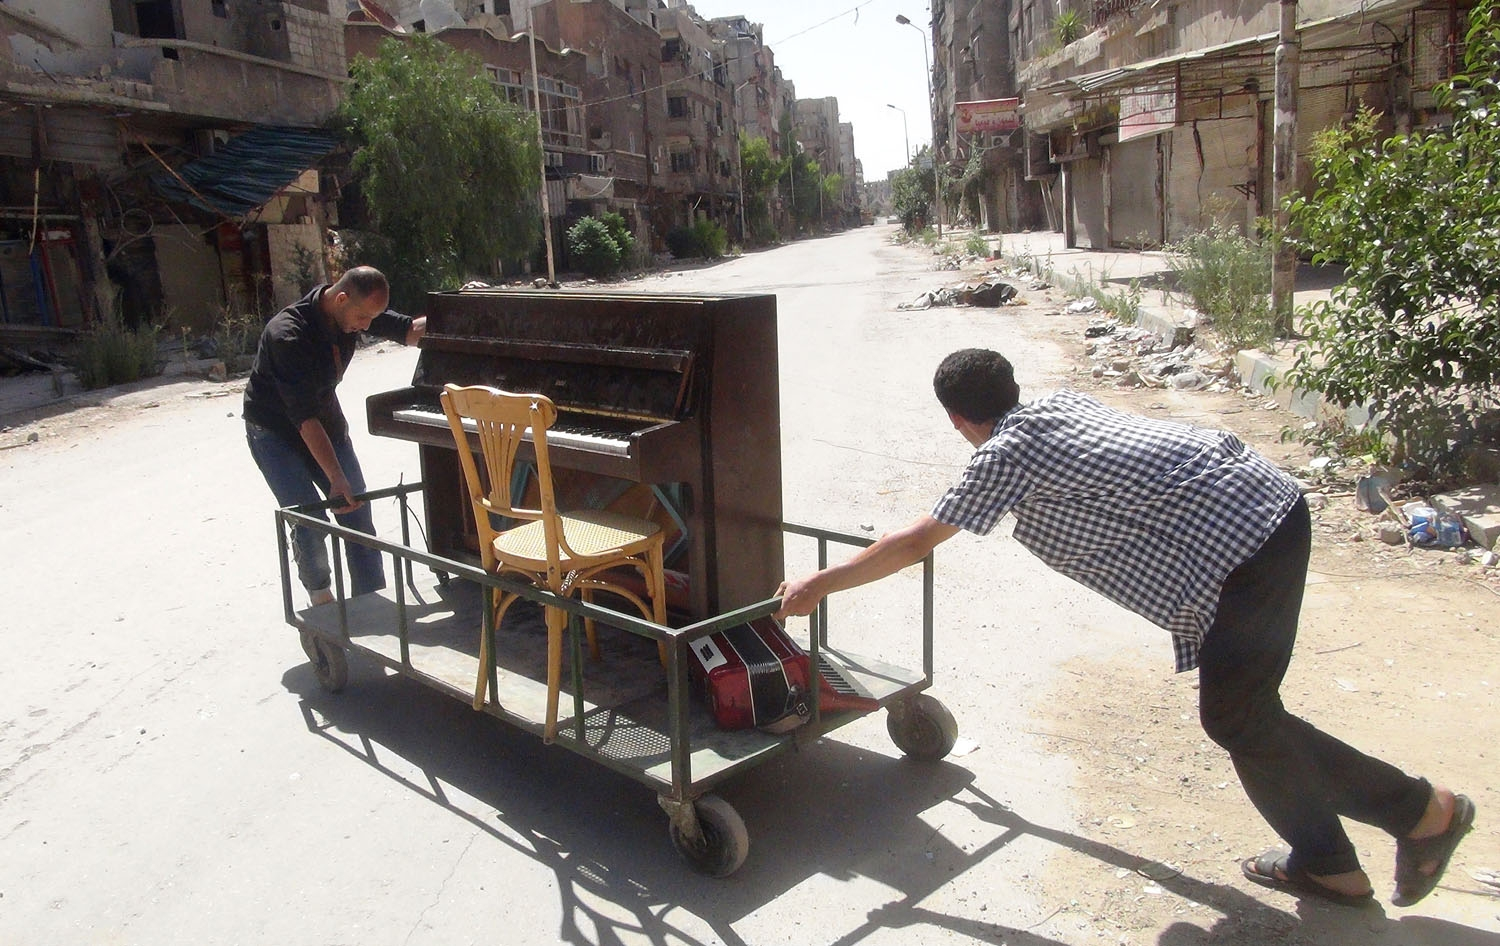 Ayham al-Ahmed (R), a resident of Damascus' Yarmuk Palestinian refugee camp, is helped by friends to push his piano in the middle of the street on June 26, 2014